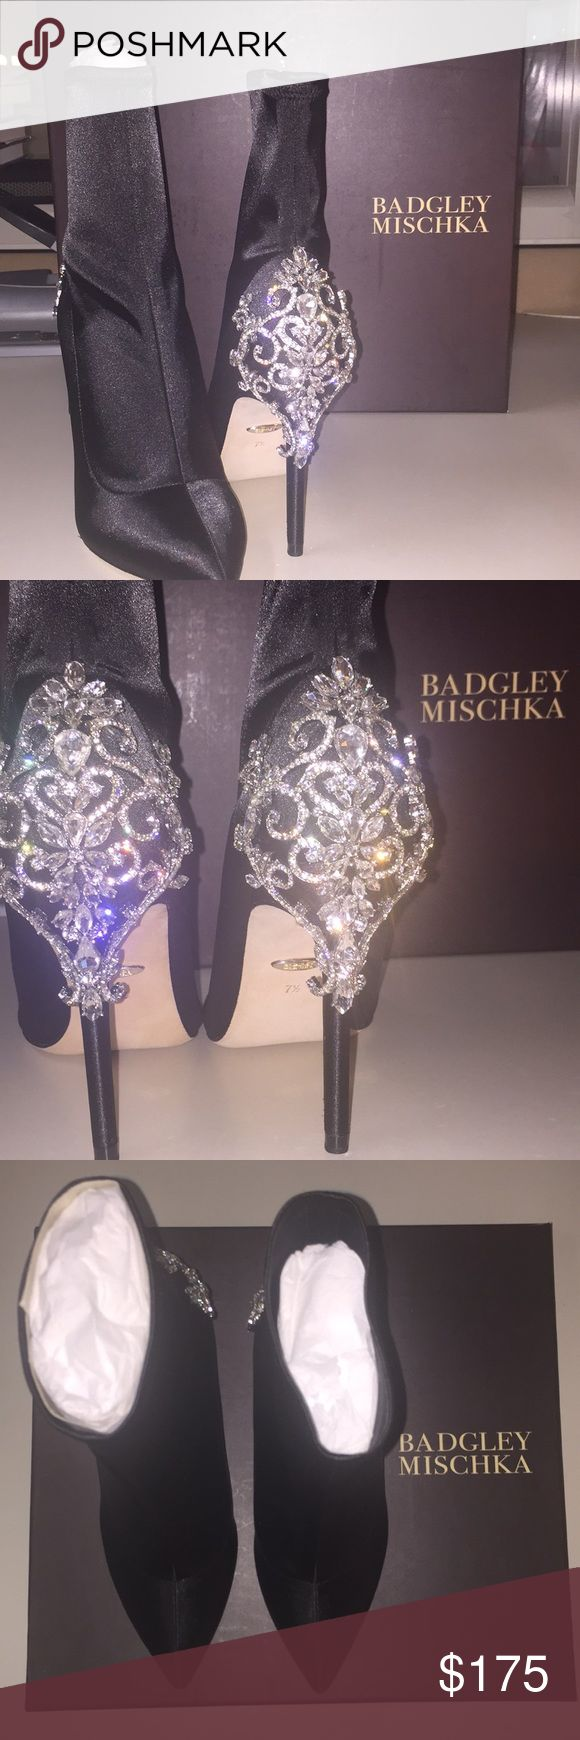 Badgley Mischka Meg Stretch Sat Evening Boot This is a black satin bootie. Features embellished geek and pointed toe. This shoe has never been worn it was a Christmas gift that wasn't my style. Comes with box, dust bag, and replacement embellishments (pictured above).  ❌ NO TRADES  ✅OFFERS WELCOME Badgley Mischka Shoes Ankle Boots & Booties